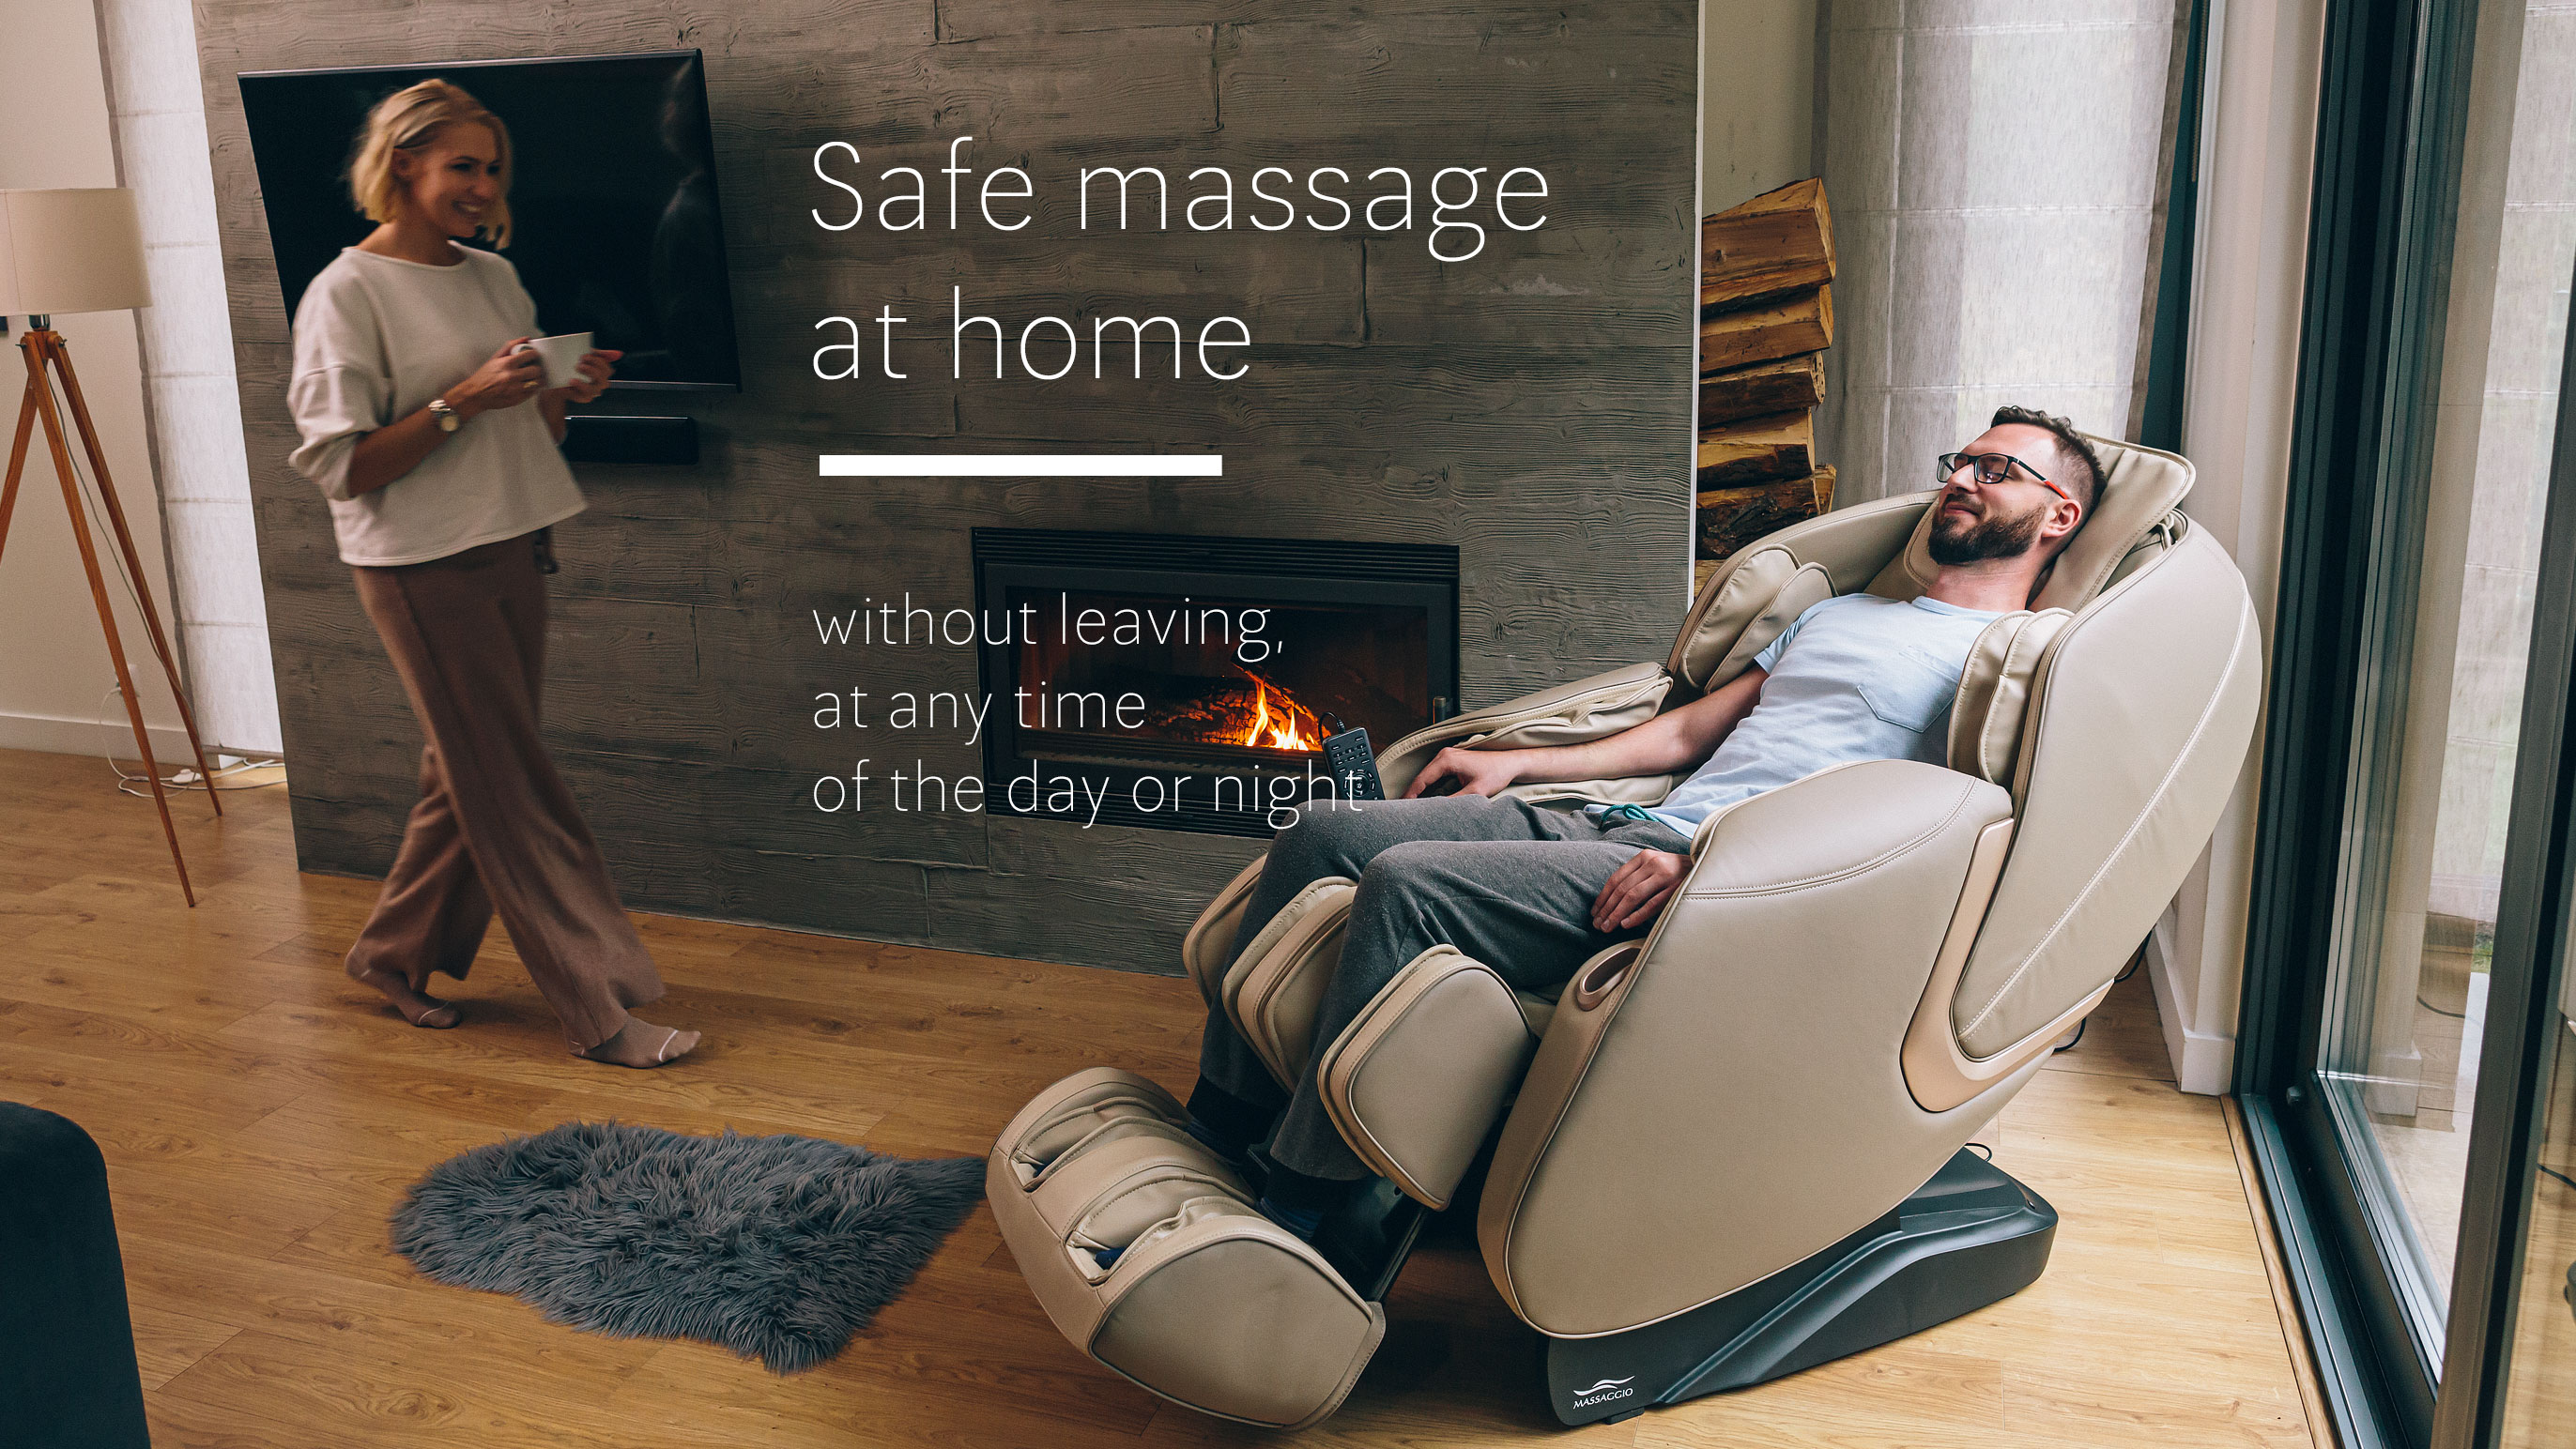 Safe massage at home